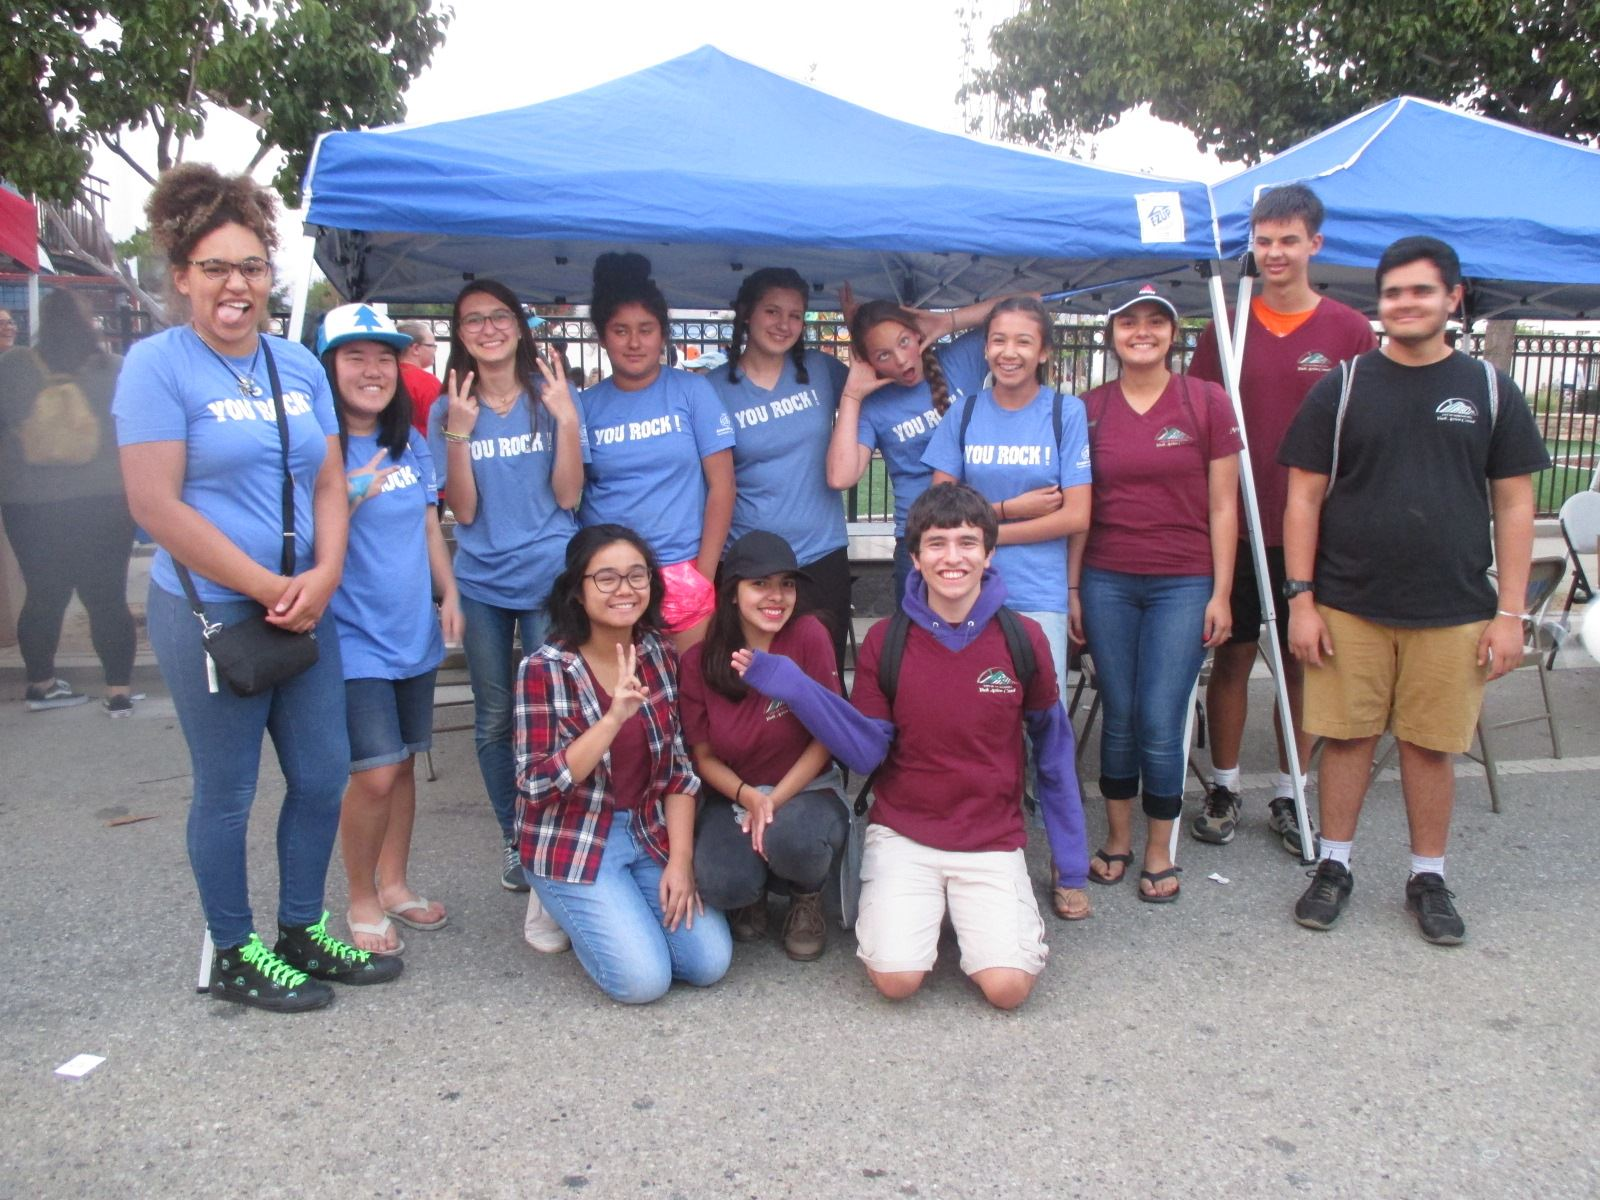 YAC Group Photo During National Night Out